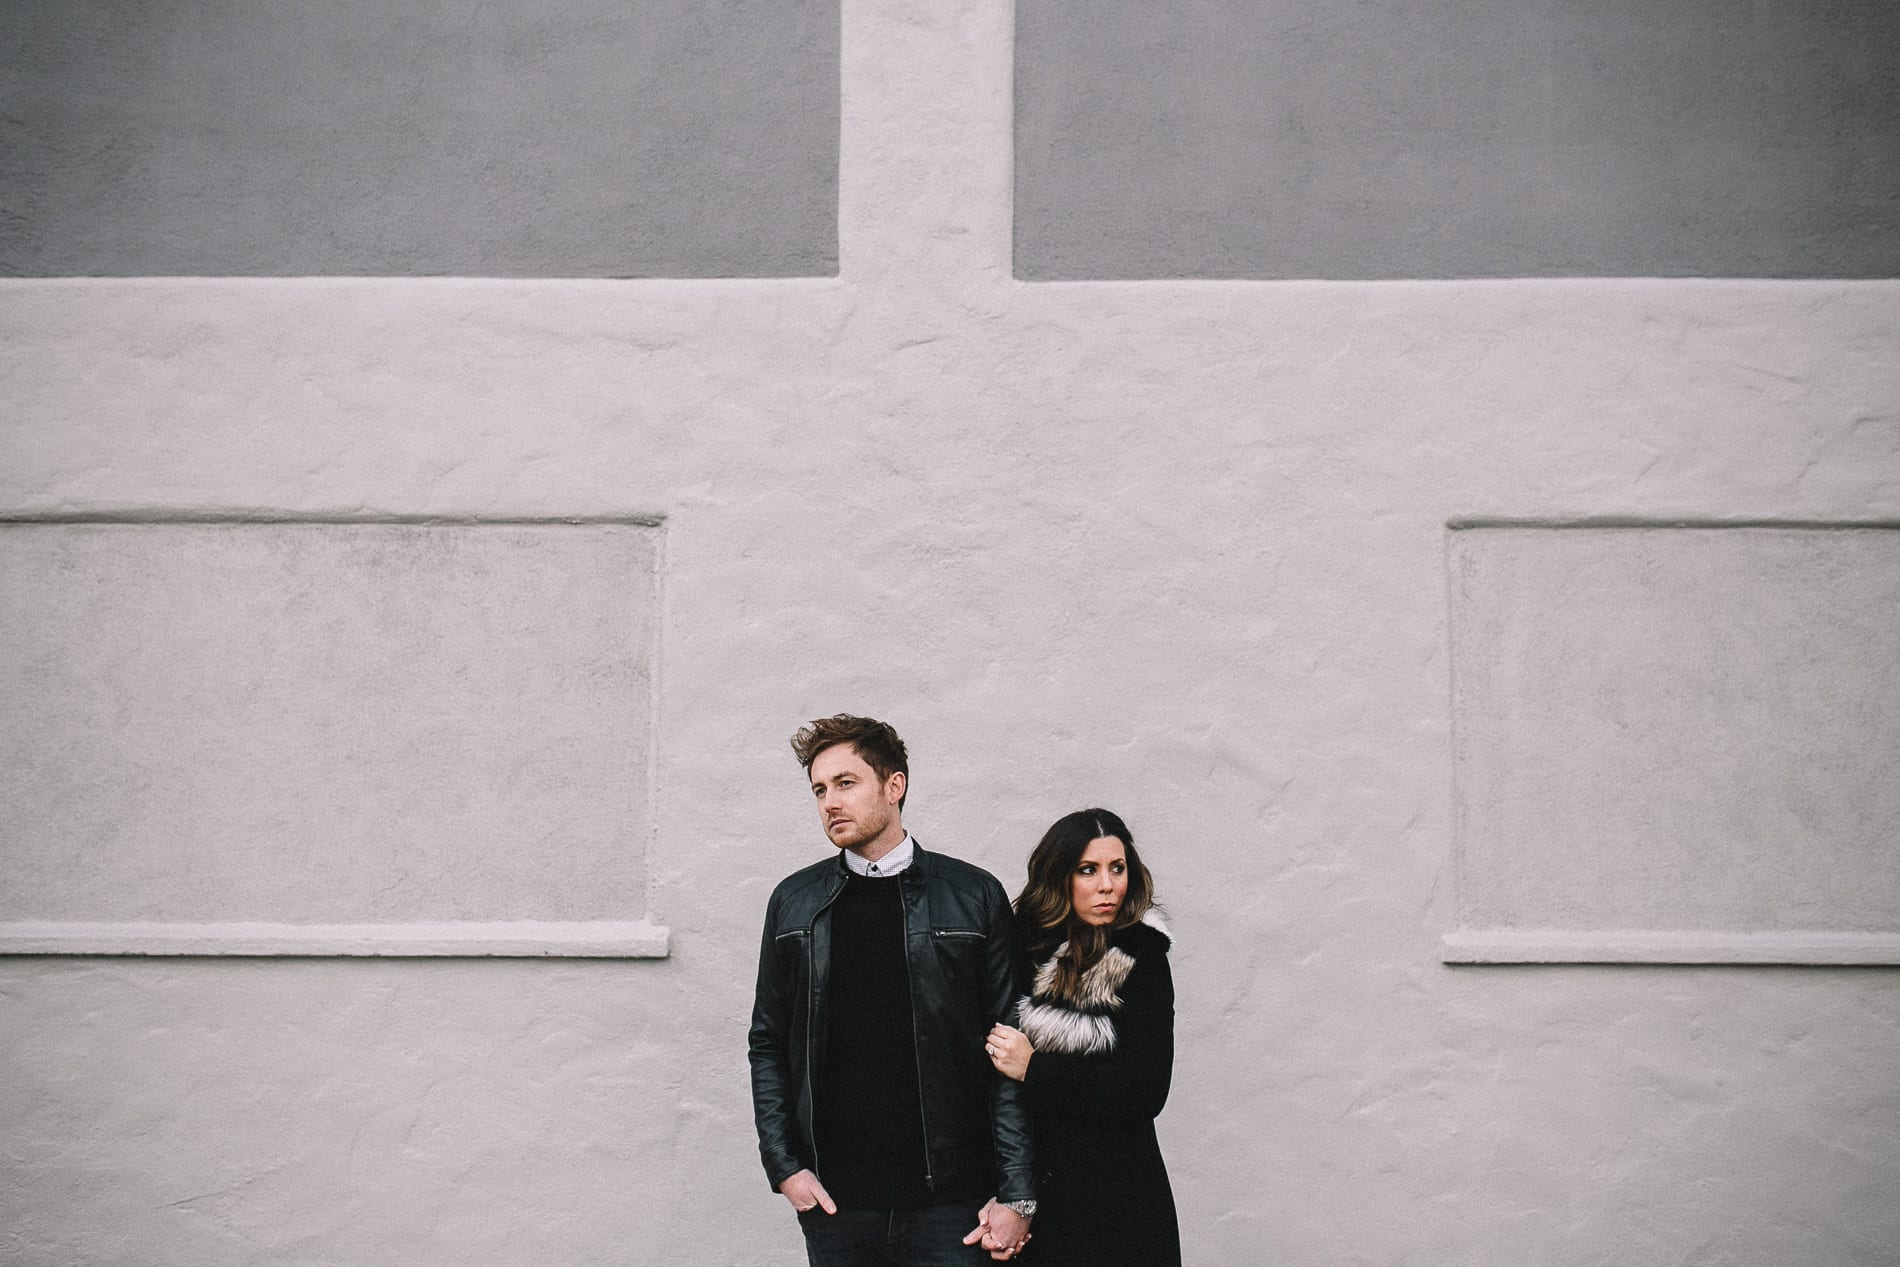 vintage-wine-bar-downtown-redding-engagement-photo-17